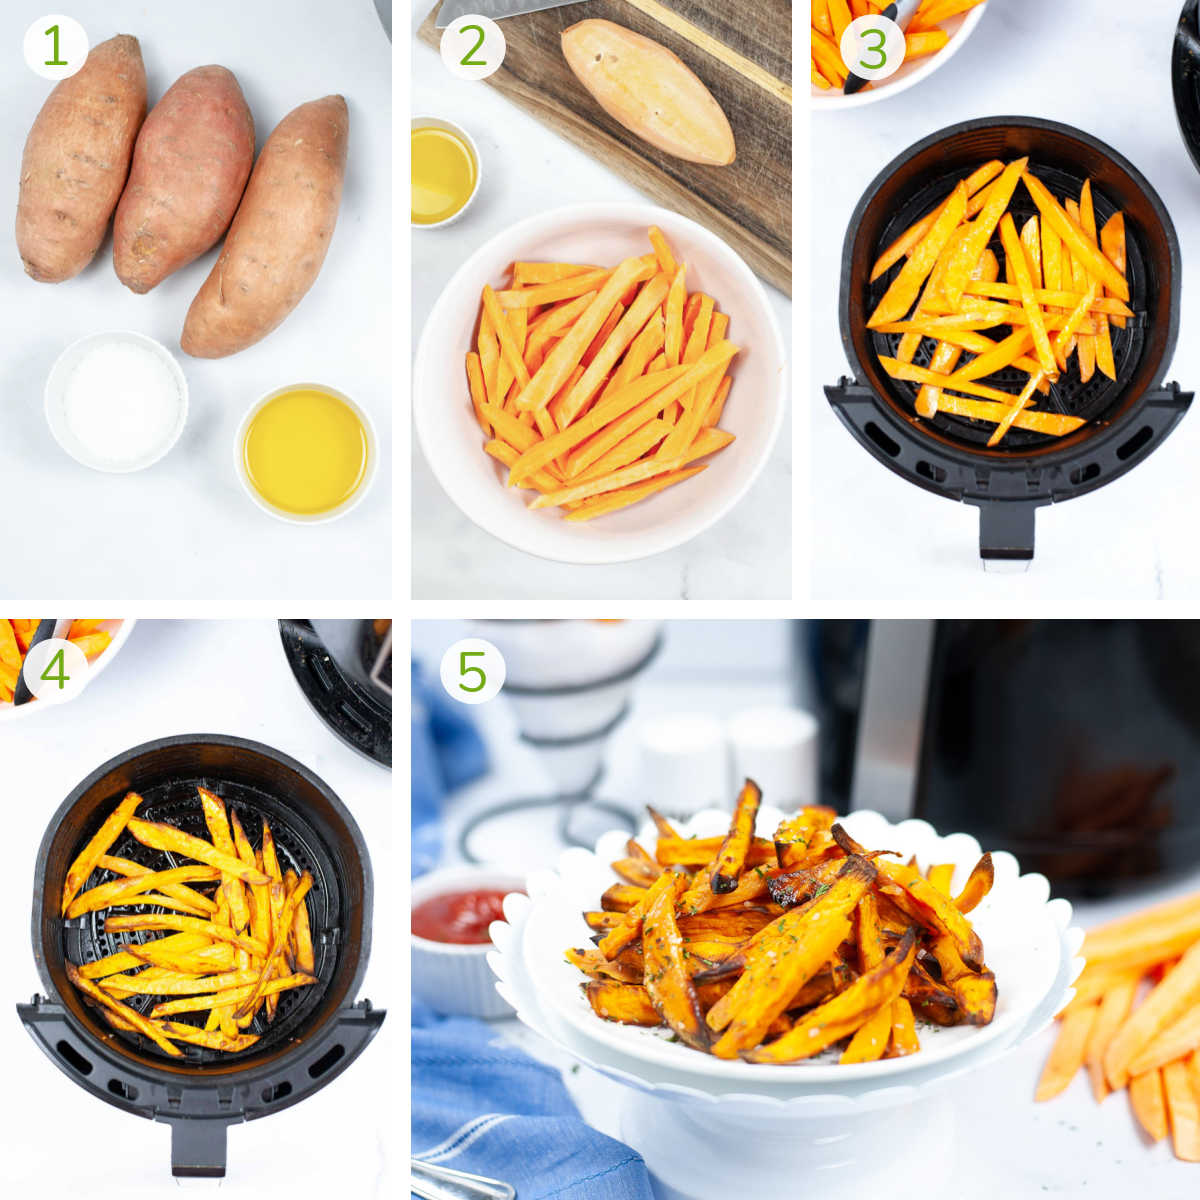 process photos showing how to peel and slice the sweet potatoes, adding them to the air fryer, cooking and serving.